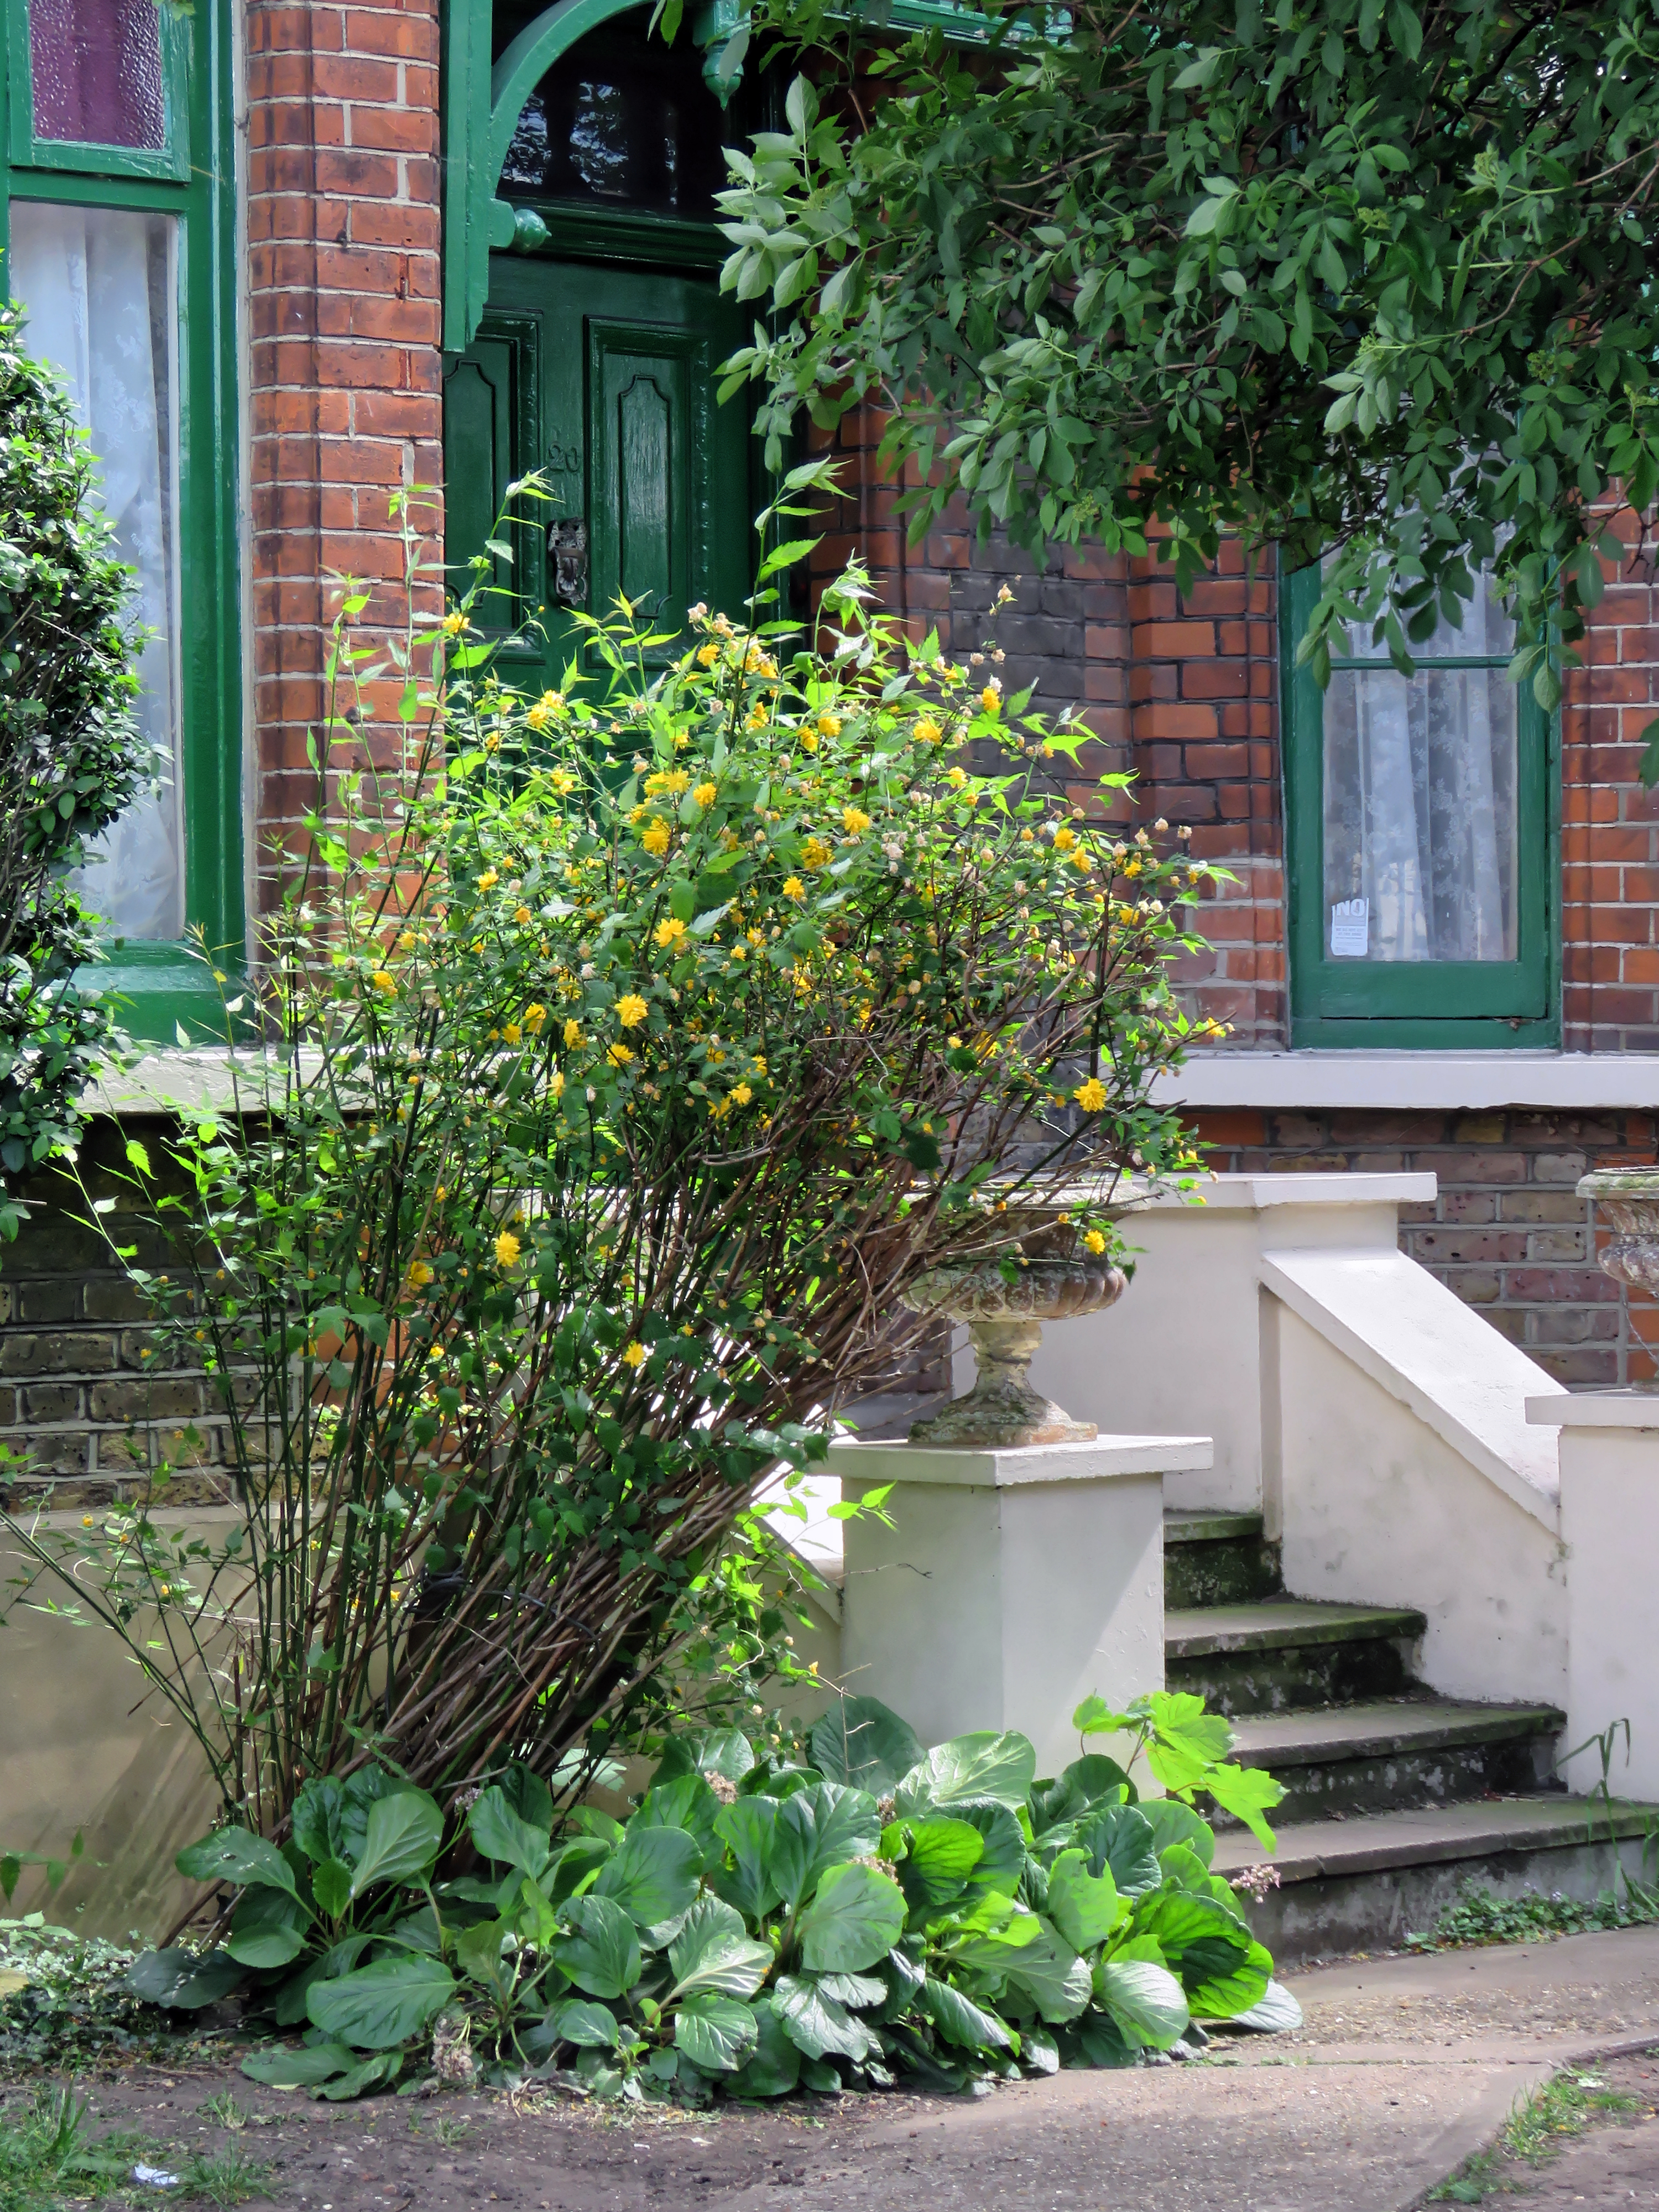 Remarkable Filefront Garden Steps Chingford Mount Road London Borough Of  With Licious Filefront Garden Steps Chingford Mount Road London Borough Of Waltham  Forest With Agreeable Garden Edge Trimmer Also Decorative Garden Wall Tiles In Addition Polwarth Gardens And Travelodge Covent Garden Reviews As Well As Almondsbury Garden Centre Additionally Natural Garden From Commonswikimediaorg With   Licious Filefront Garden Steps Chingford Mount Road London Borough Of  With Agreeable Filefront Garden Steps Chingford Mount Road London Borough Of Waltham  Forest And Remarkable Garden Edge Trimmer Also Decorative Garden Wall Tiles In Addition Polwarth Gardens From Commonswikimediaorg